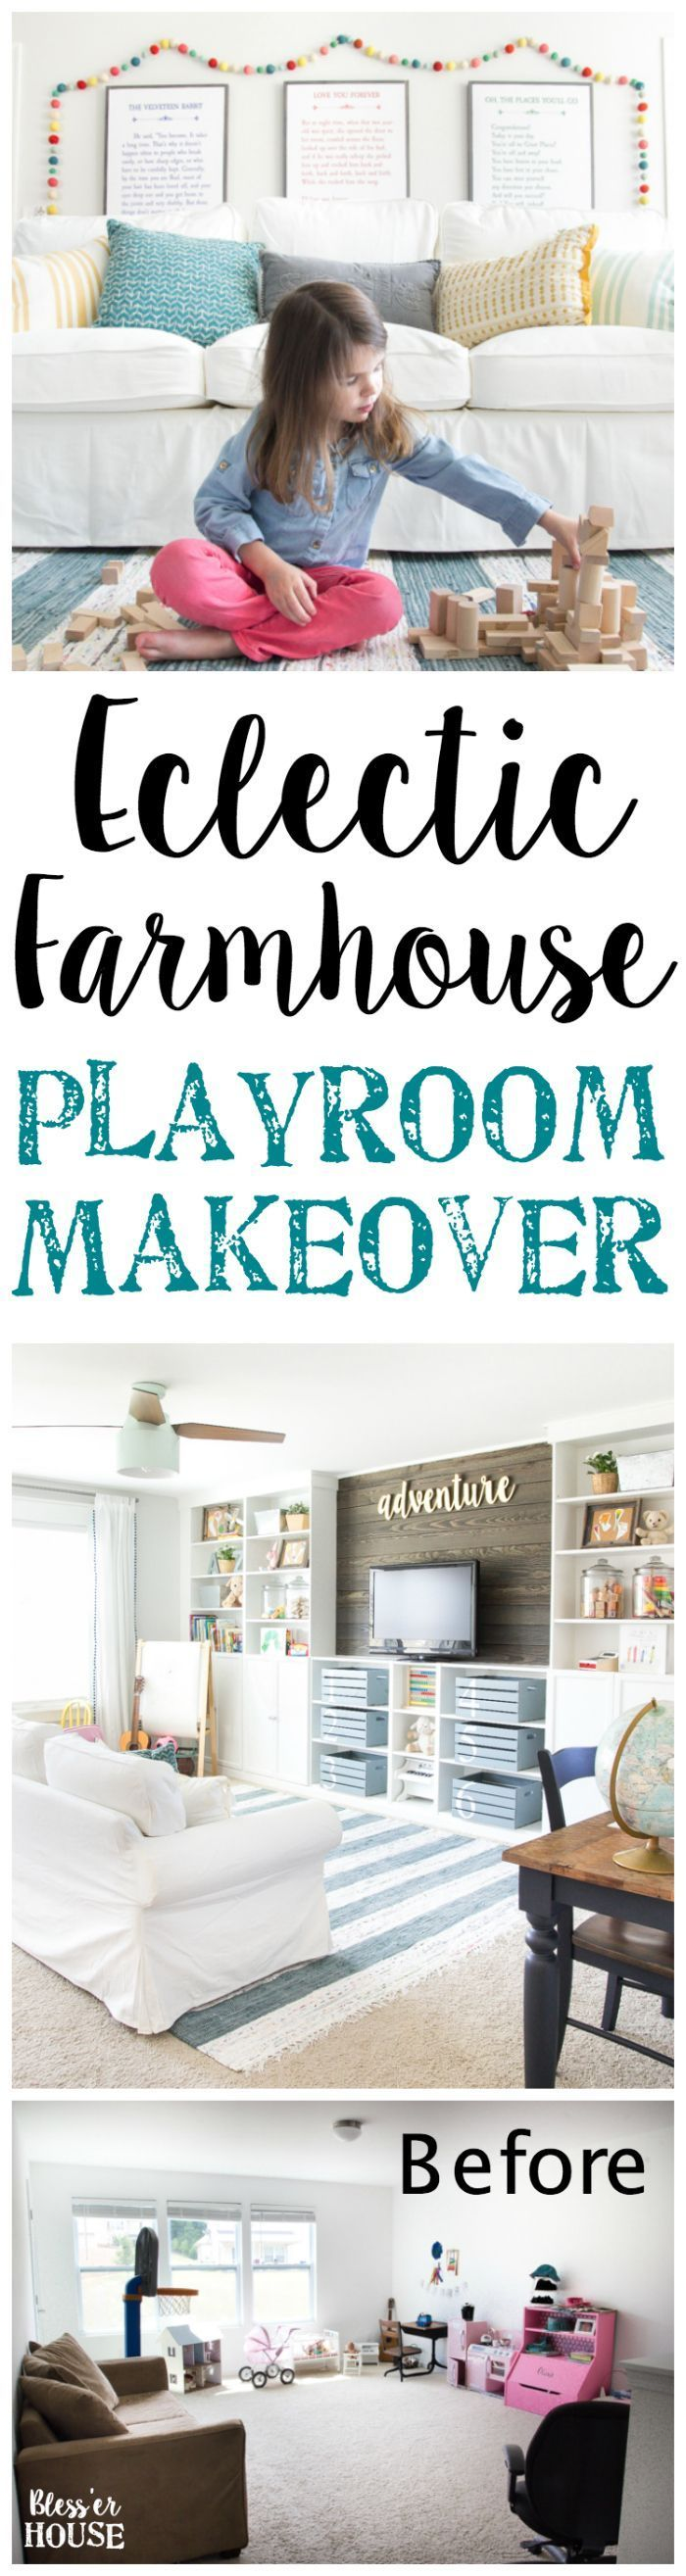 Eclectic Farmhouse Playroom Makeover | http://blesserhouse.com - A boring and cluttered playroom gets a modern eclectic farmhouse makeover on a budget with DIY projects, smart storage solutions, and inexpensive finds. popular pin